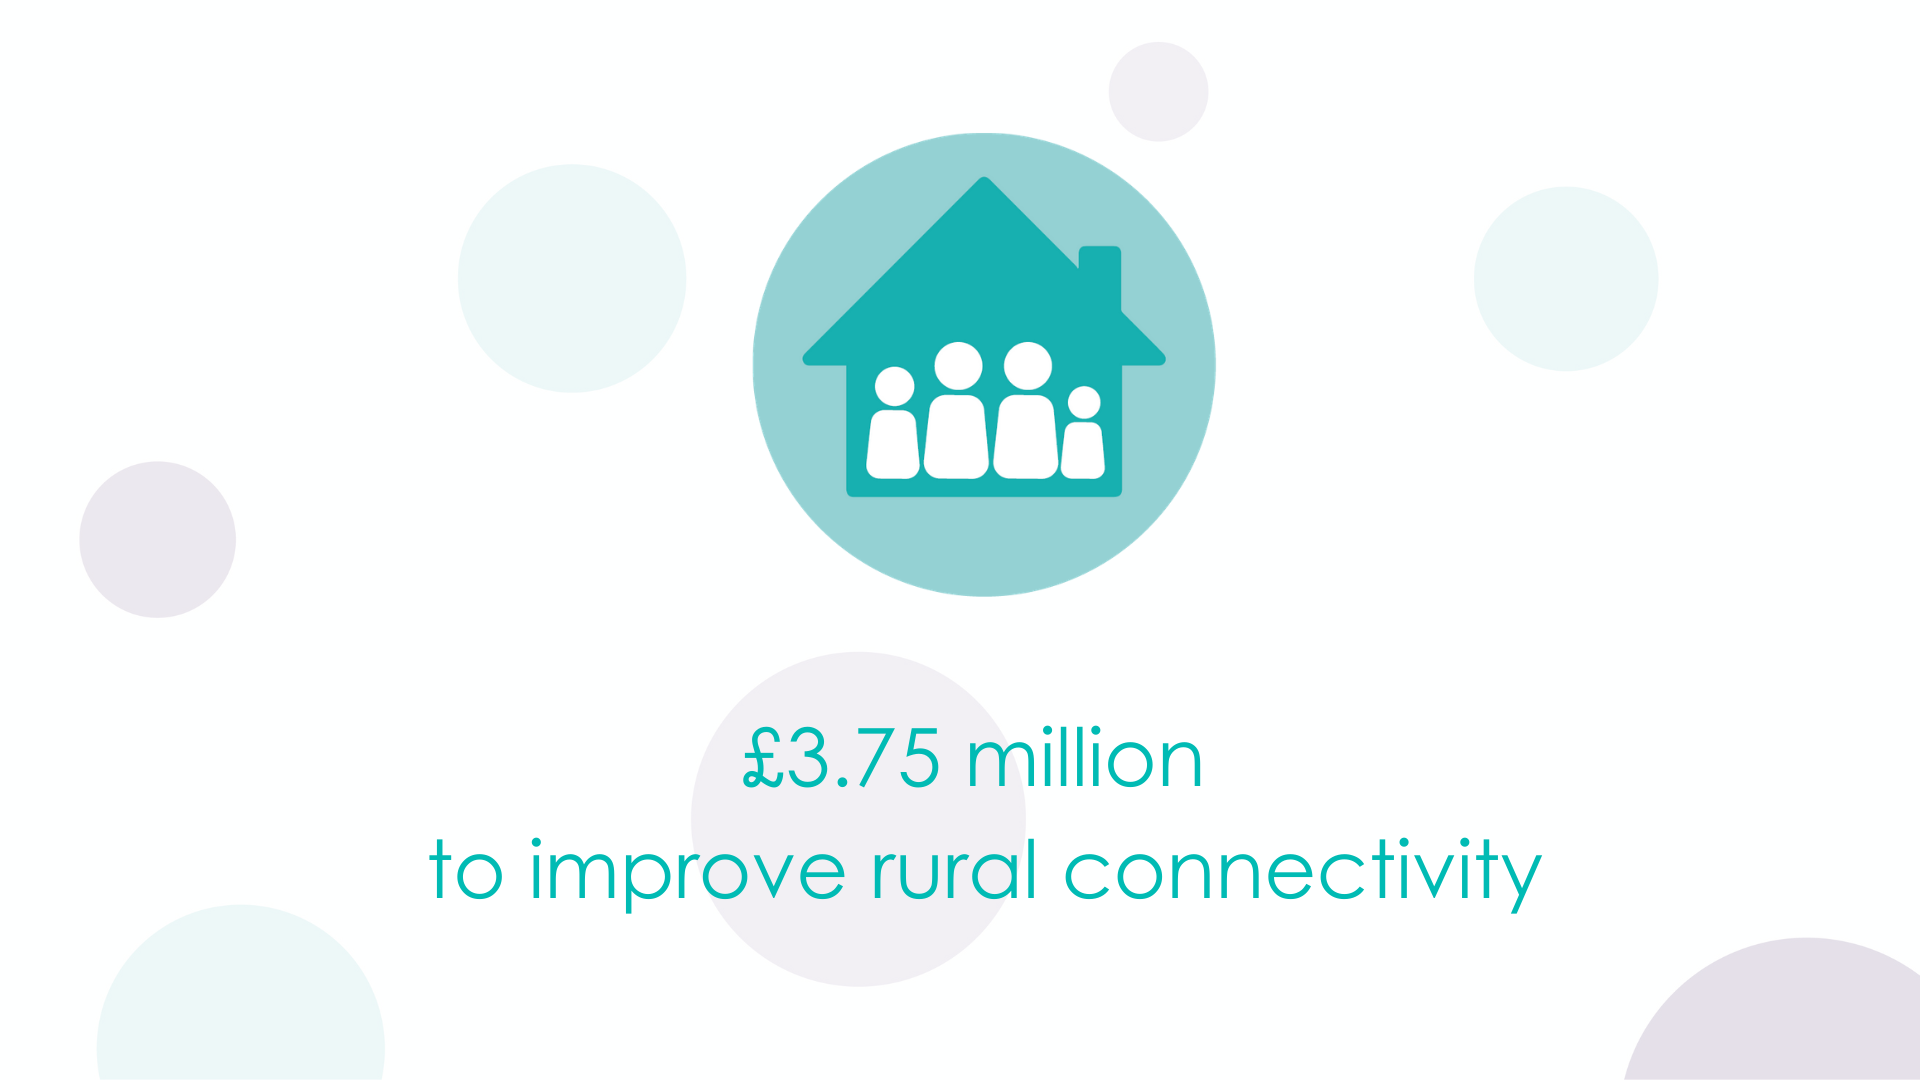 £3.75 million to improve rural connectivity